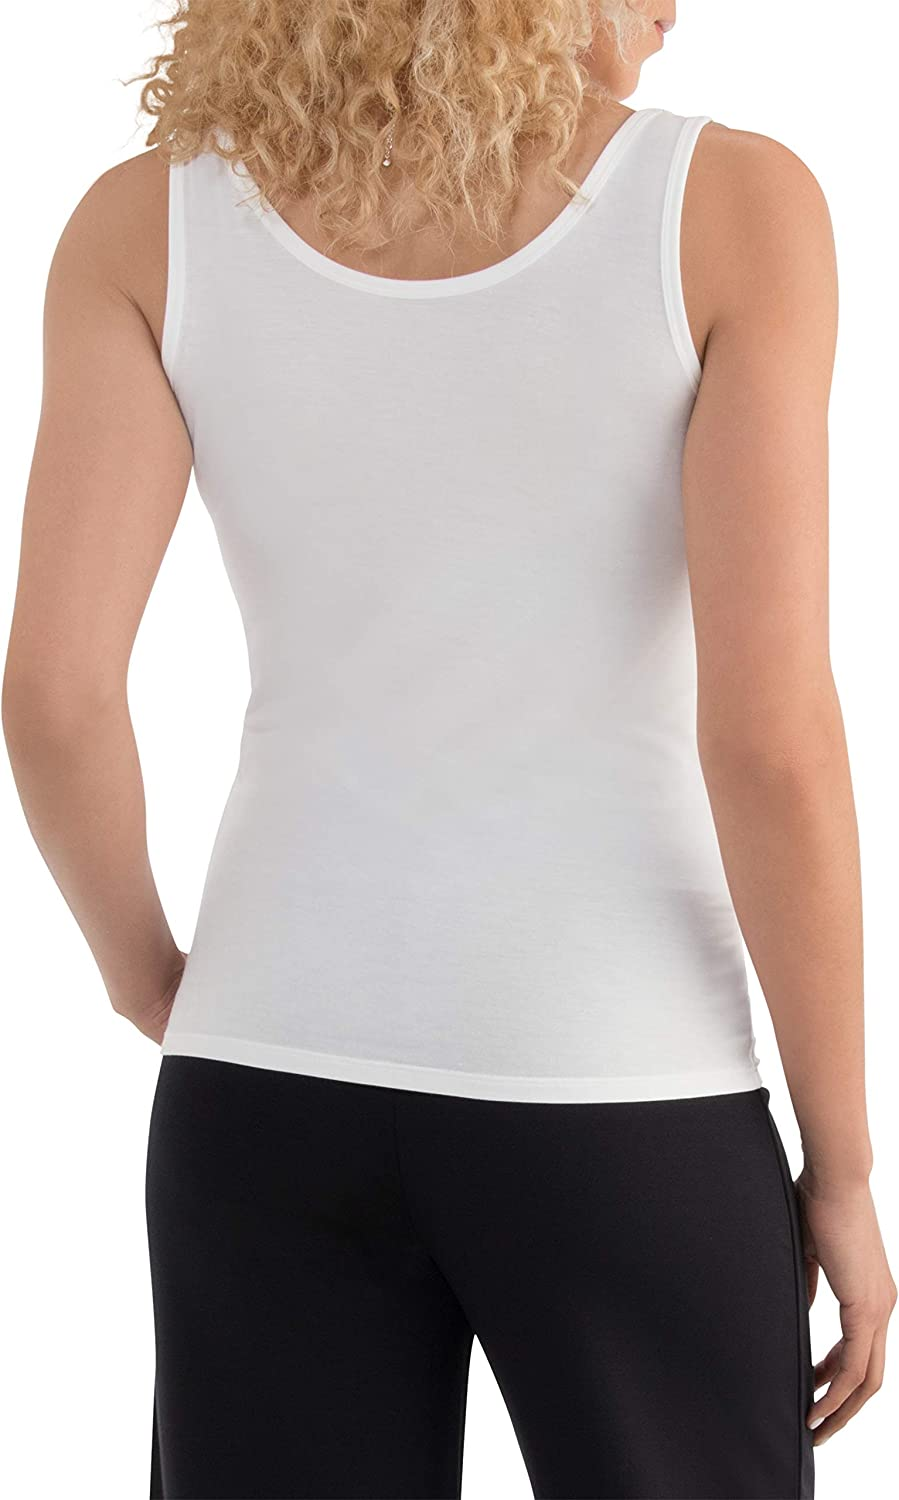 Seek No Further by Fruit of the Loom Women's V-Neck Tank Top